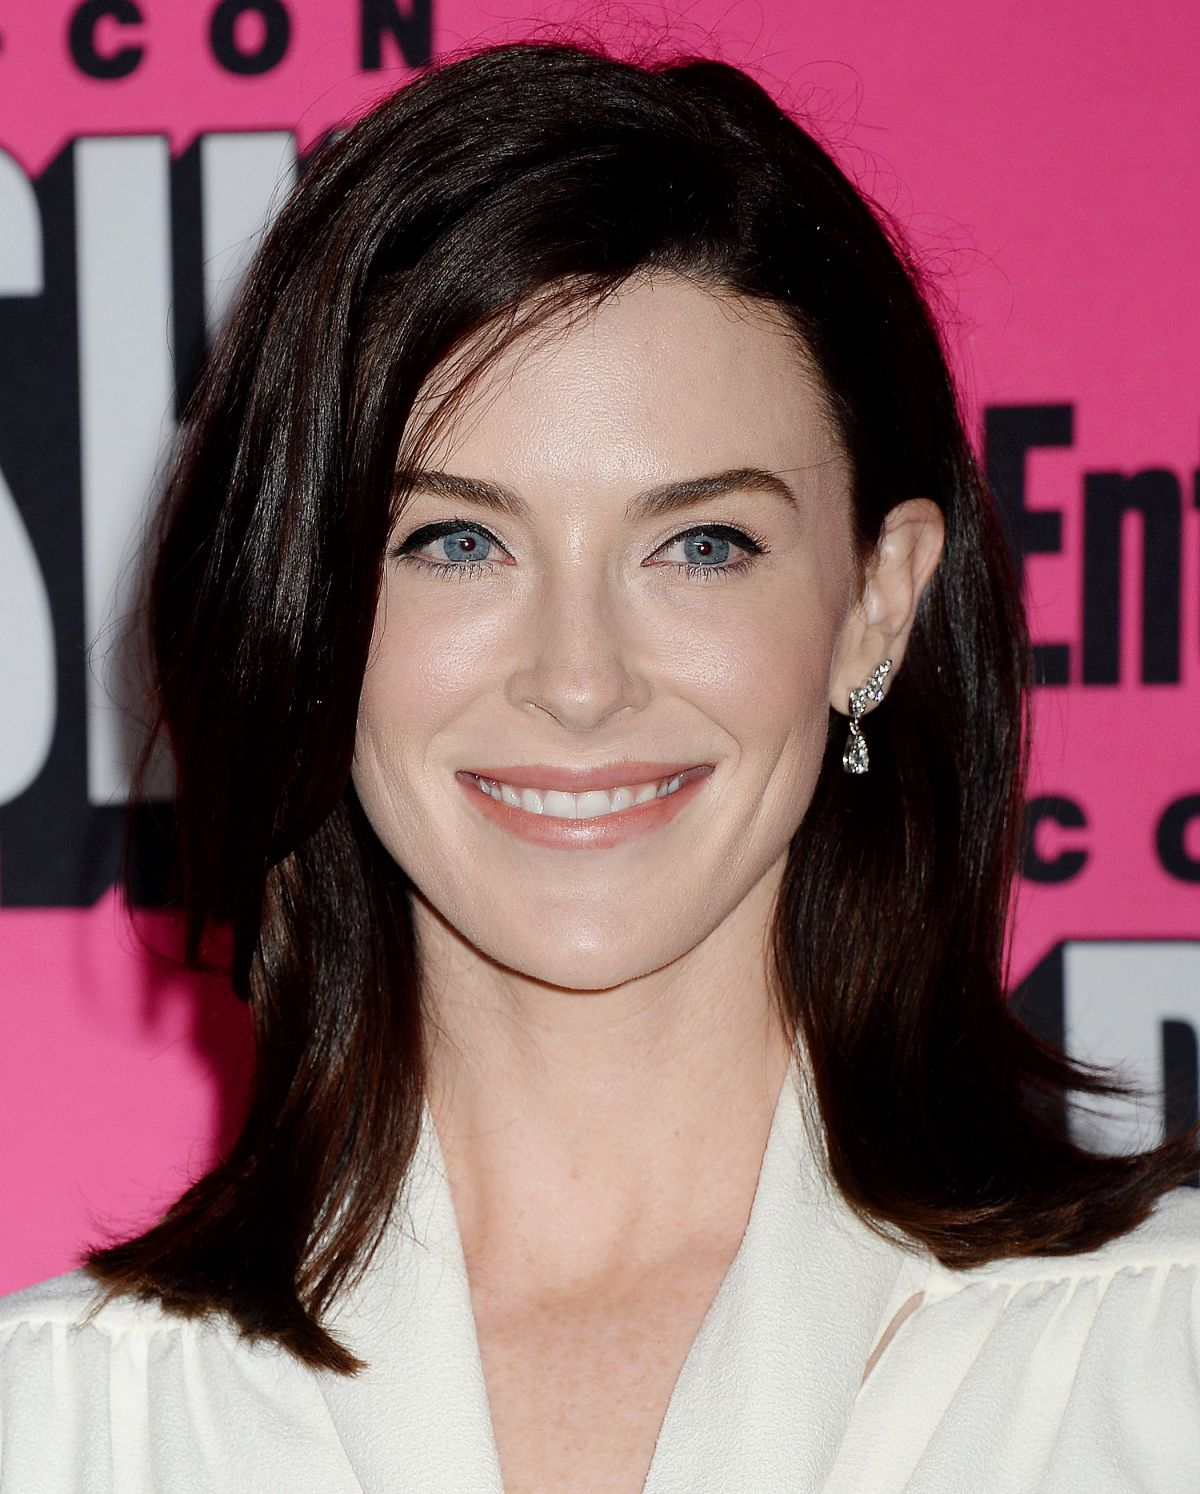 BRIDGET REGAN at Entertainment Weekly